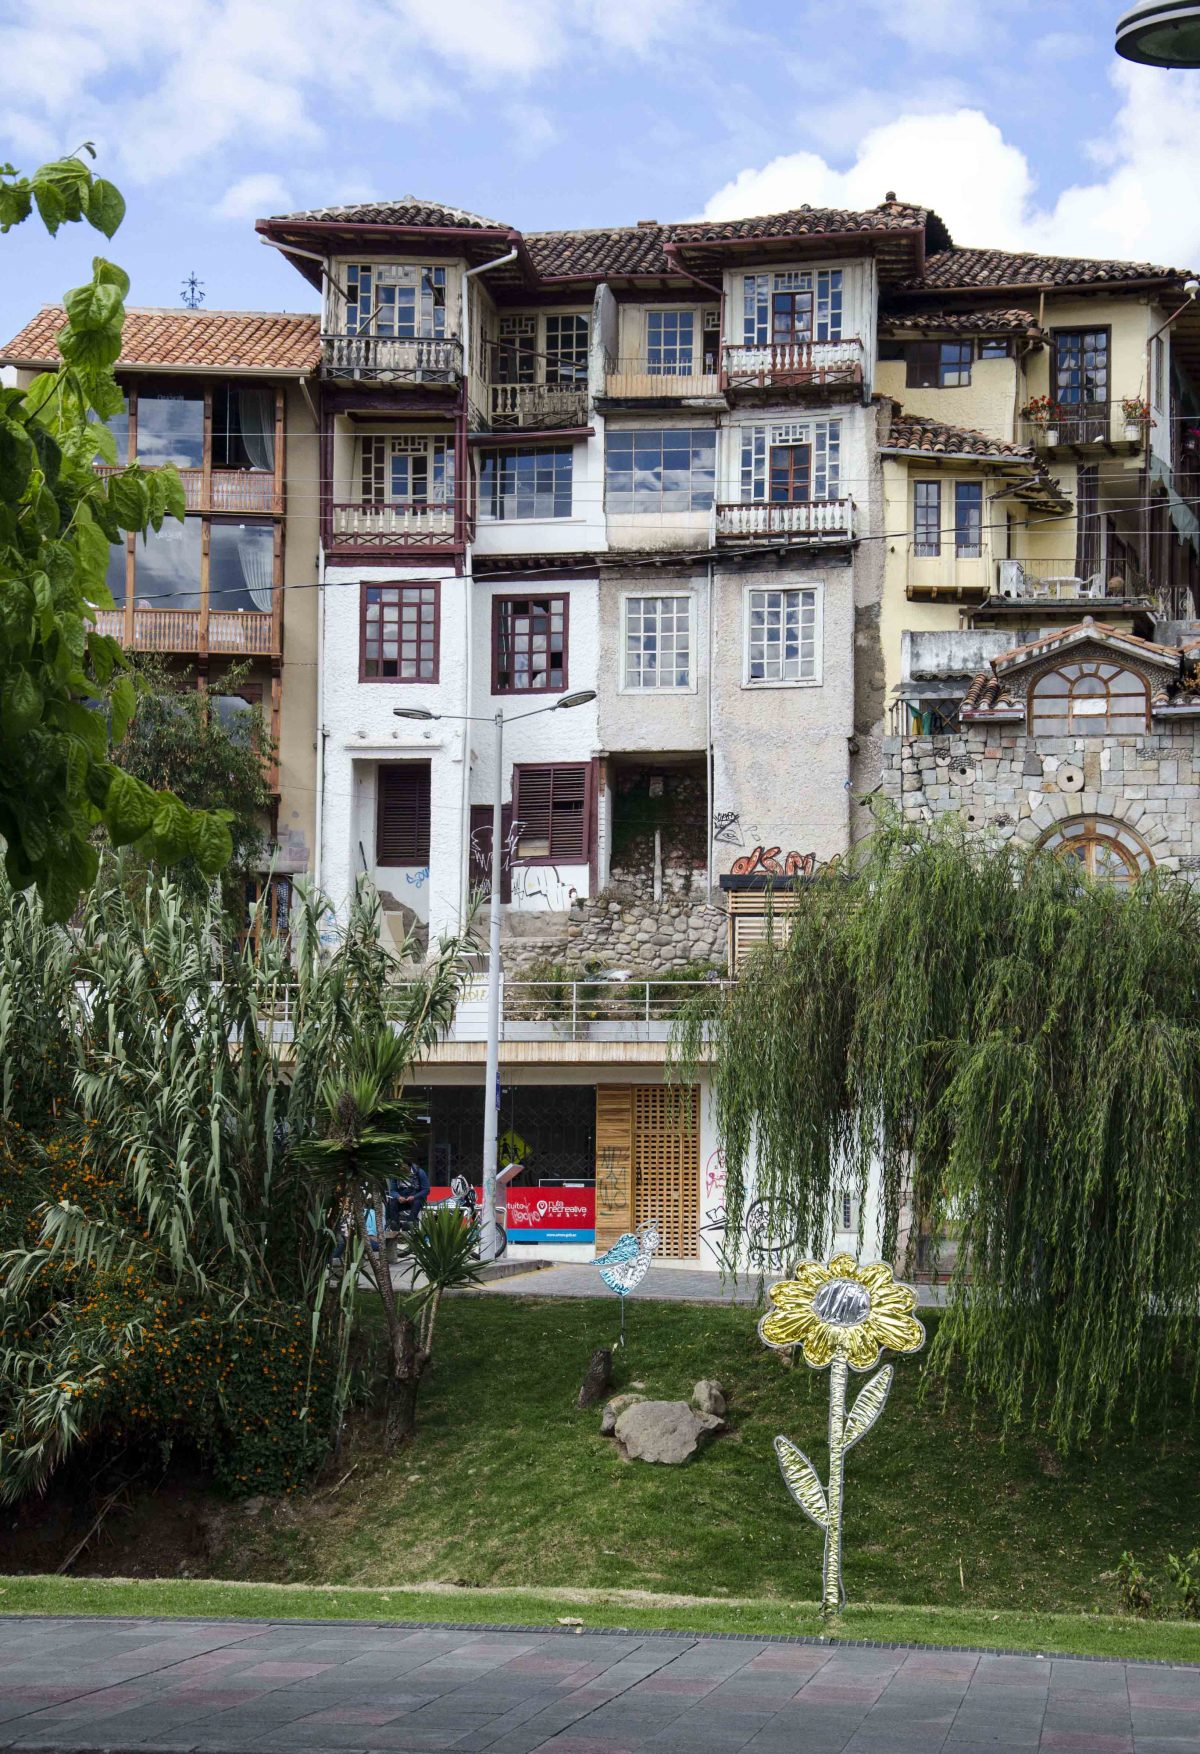 Houses near the Rio Tomebamba, Cuenca, Ecuador